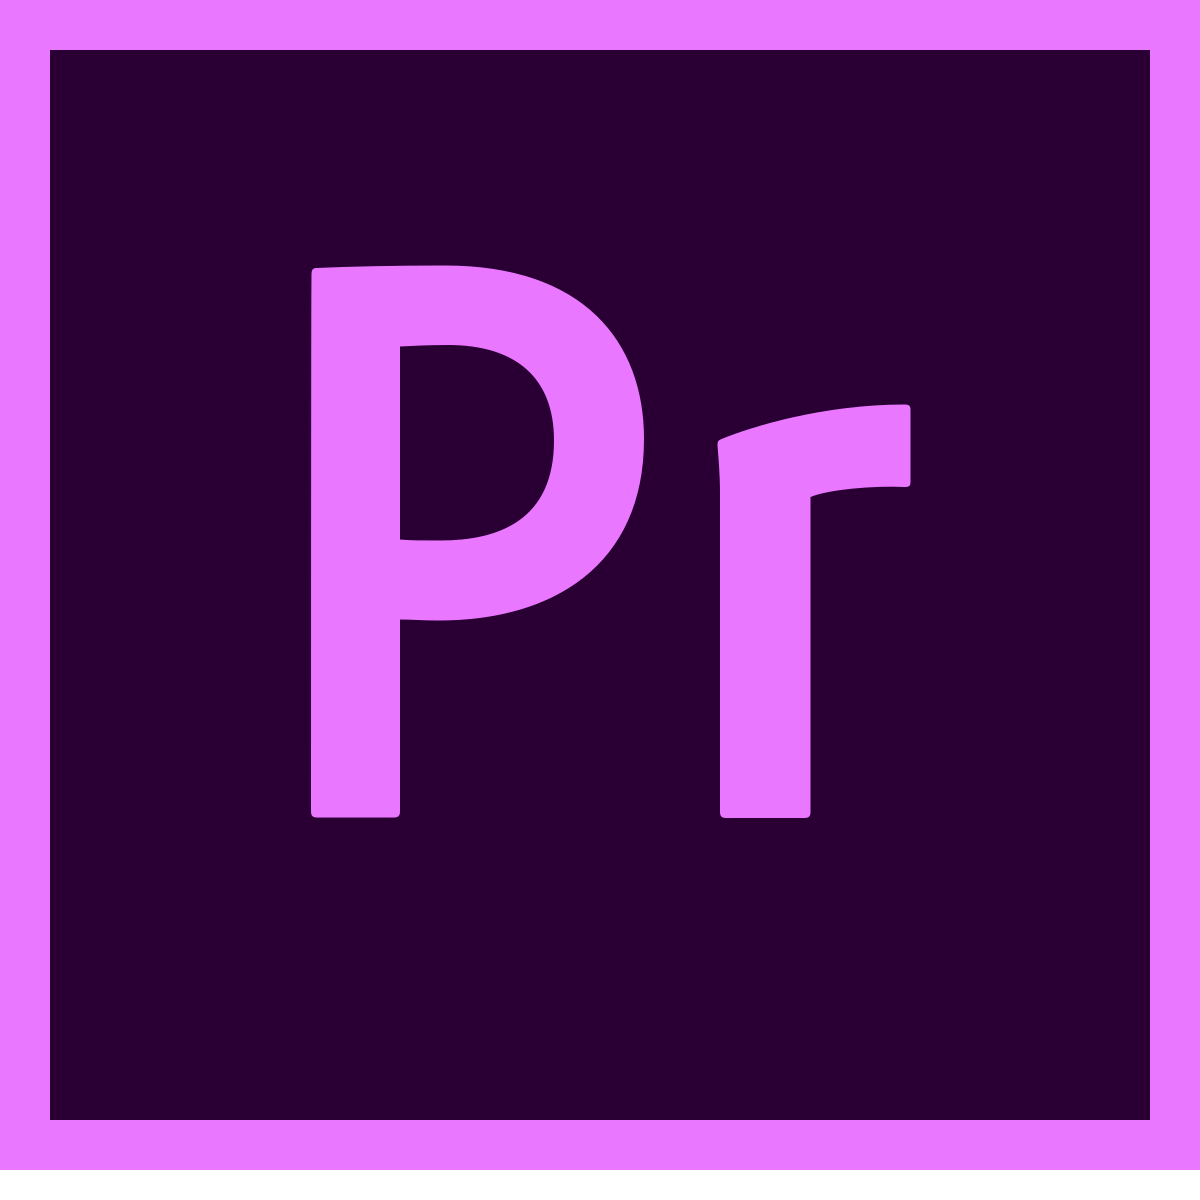 How to Buy Adobe Creative Cloud (CC) with PayPal, not Credit Card | ProDesignTools